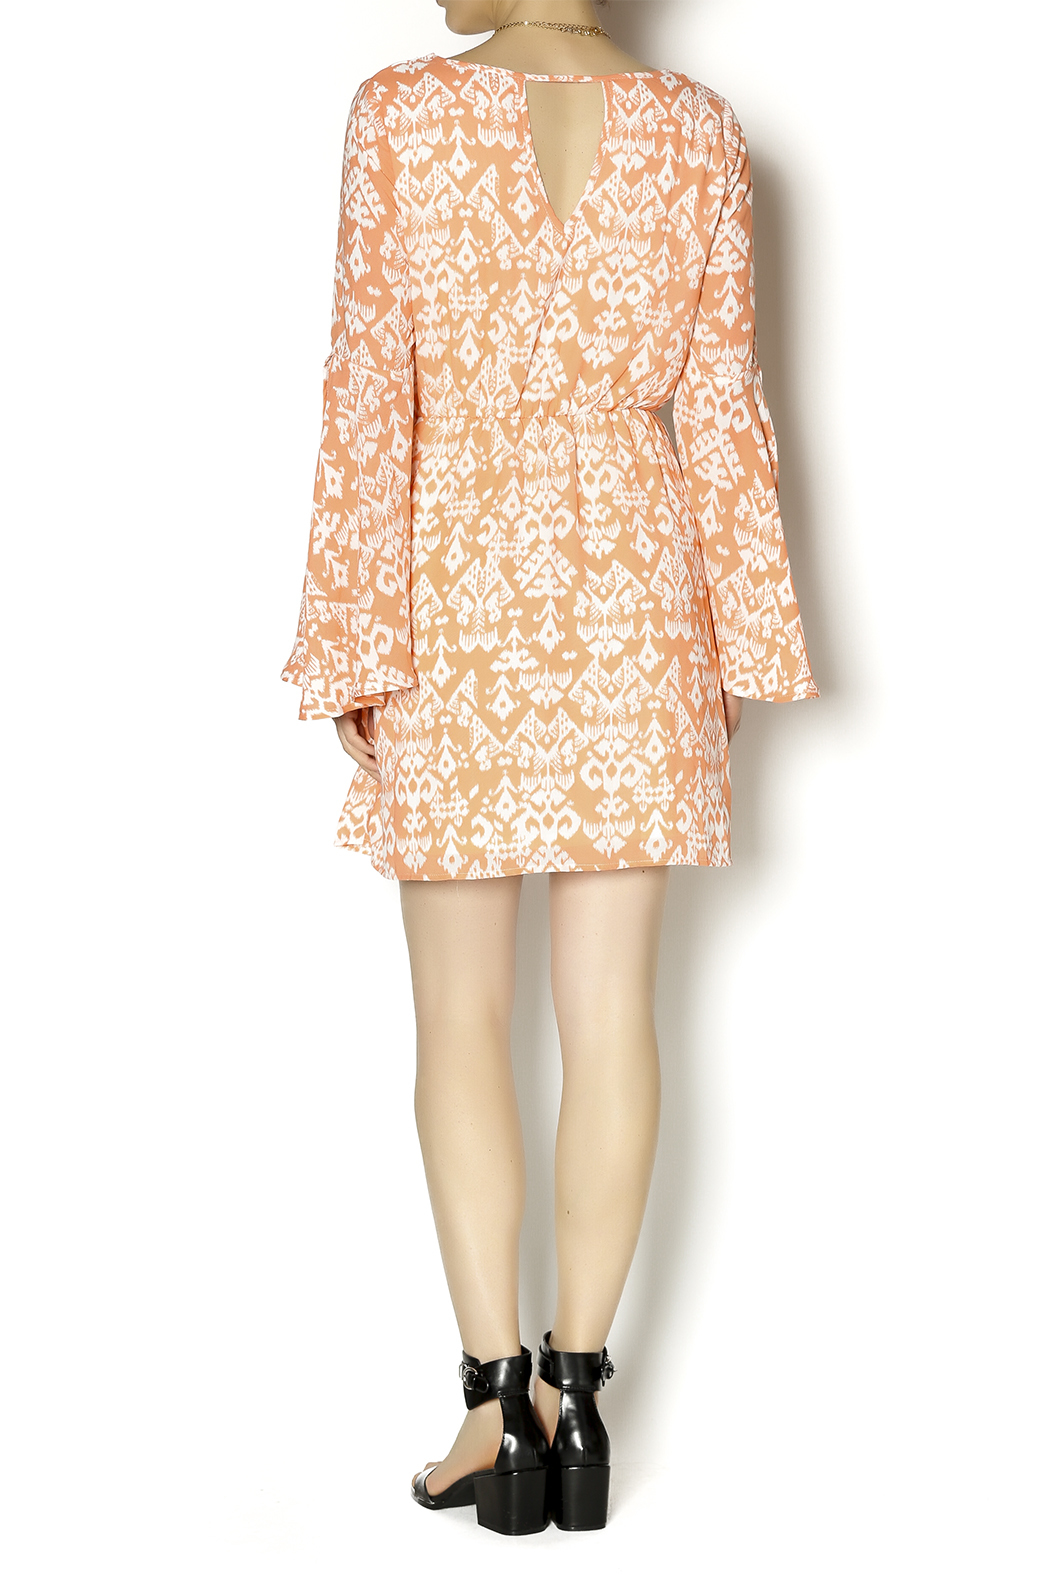 KLD Signature Bell Sleeve Dress - Side Cropped Image